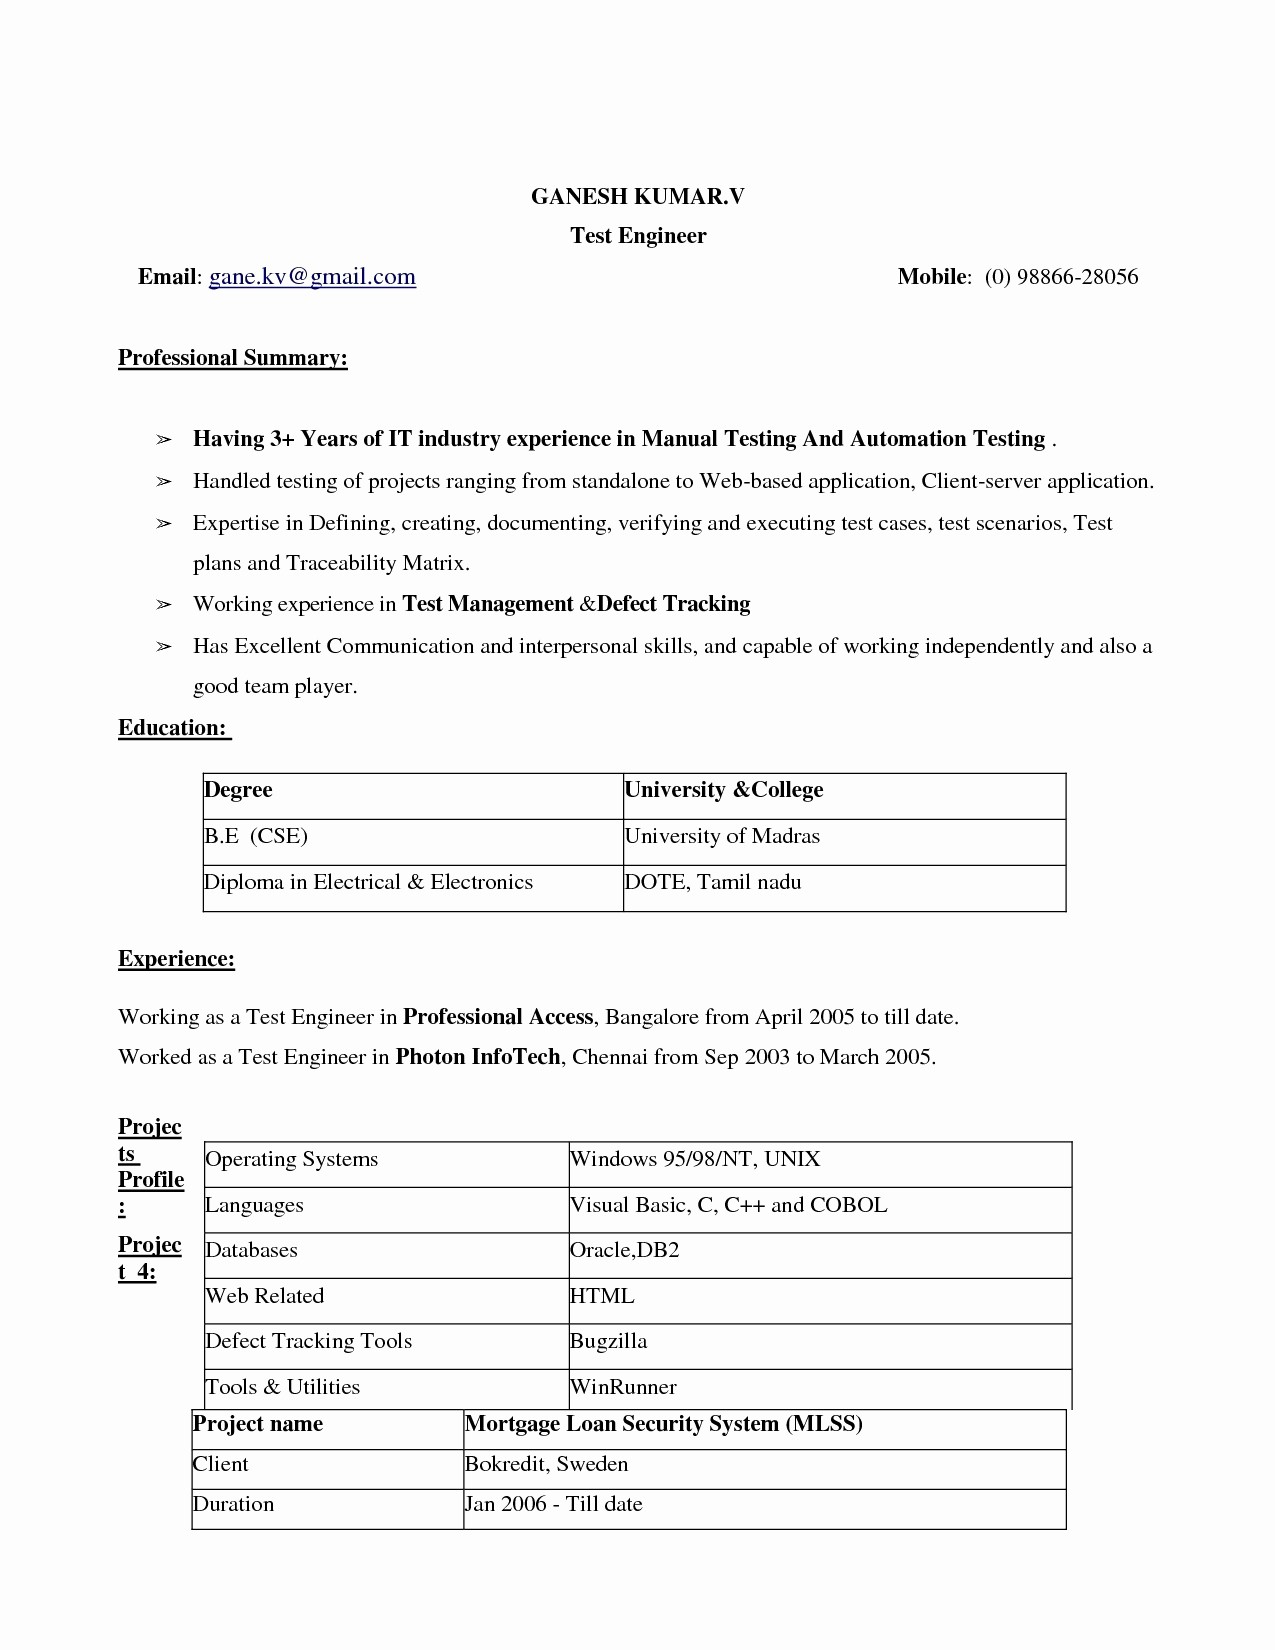 Resume Template Microsoft Word Download Lovely Resume Template Microsoft Word 2017